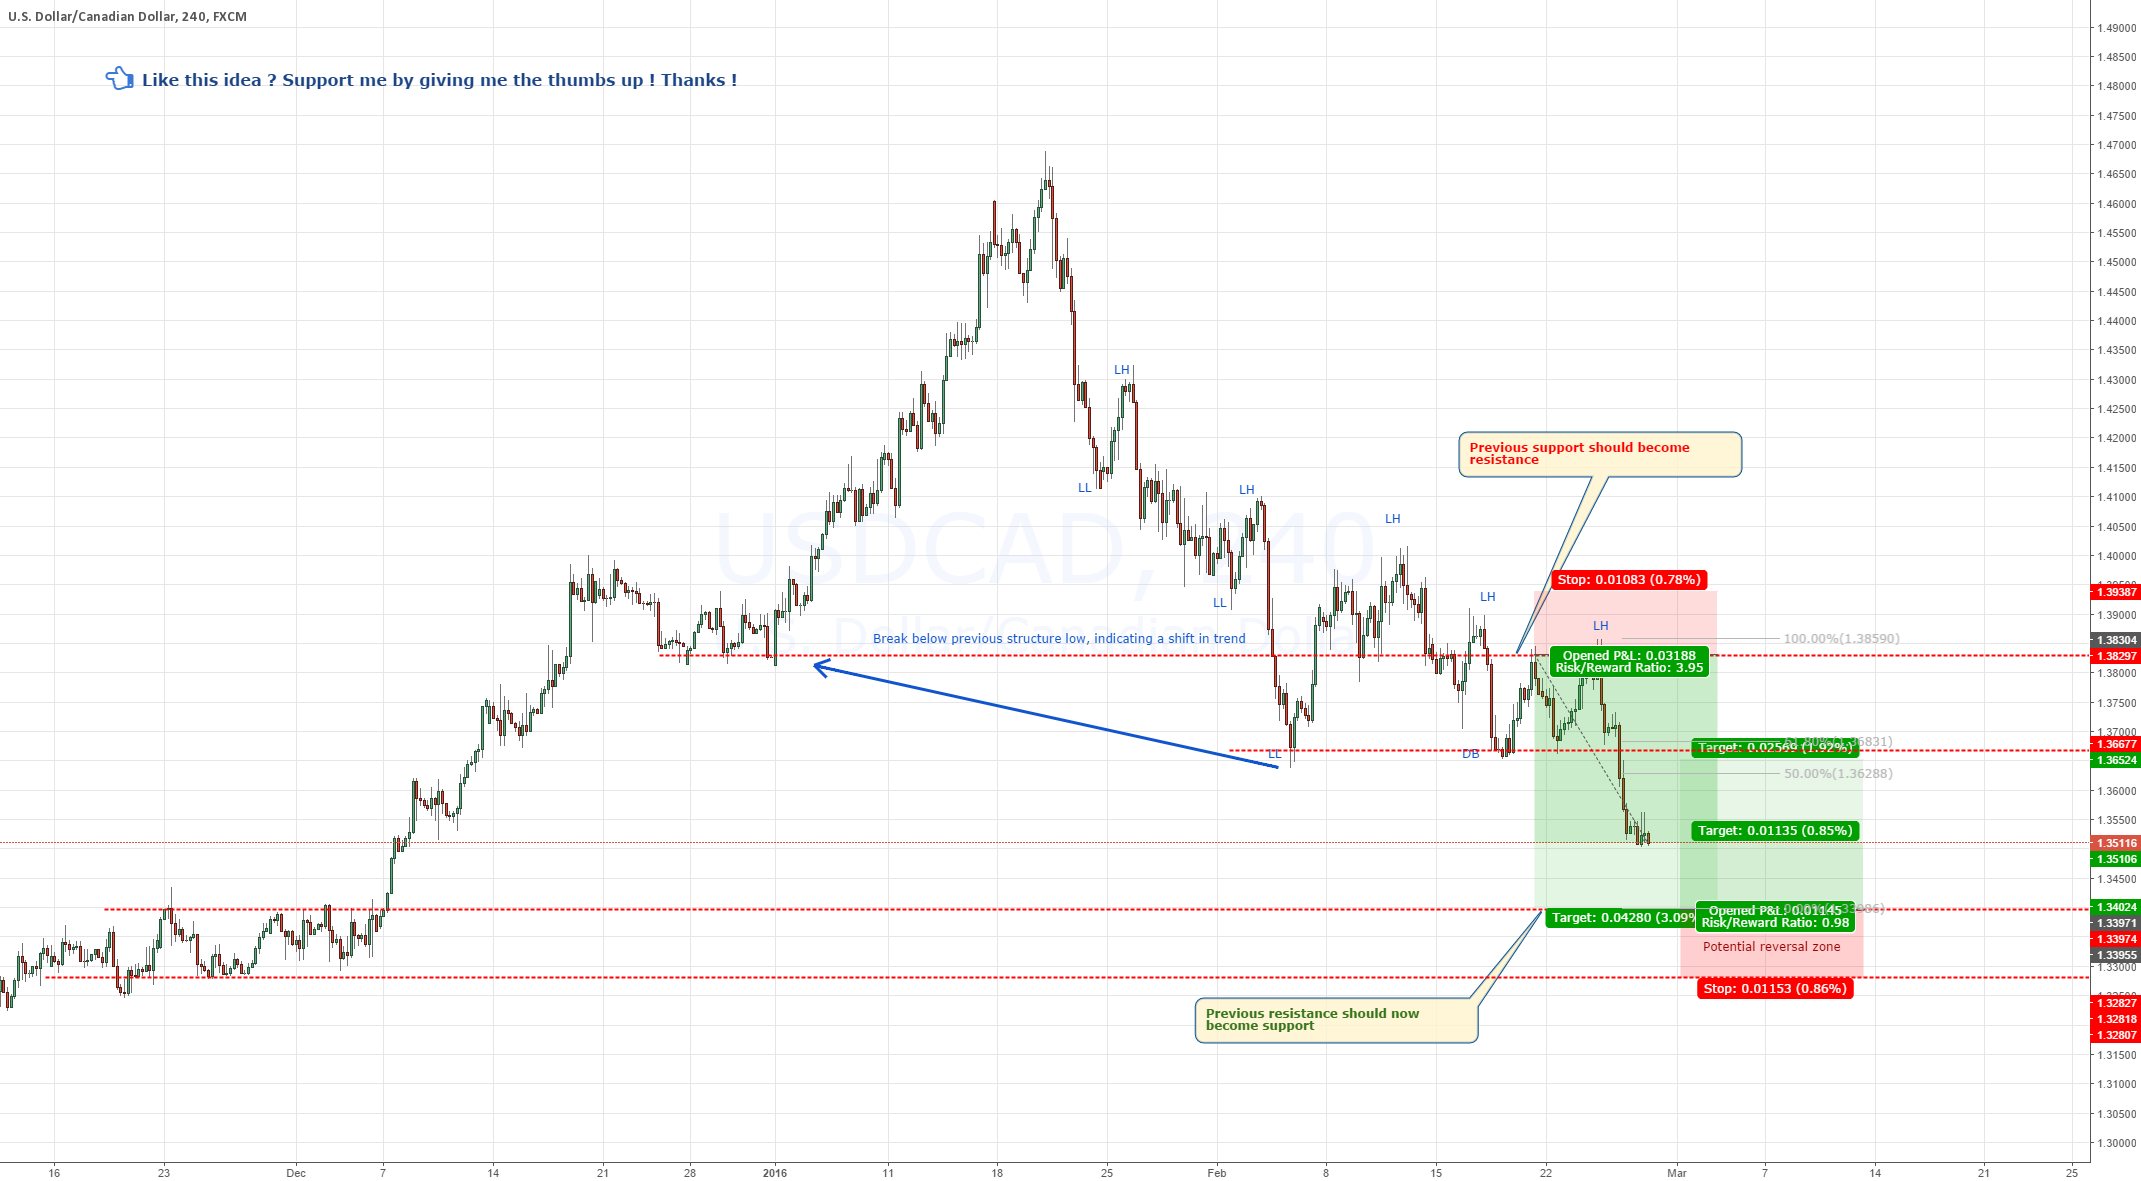 USDCAD - Almost reached targets - Preparing for reversal